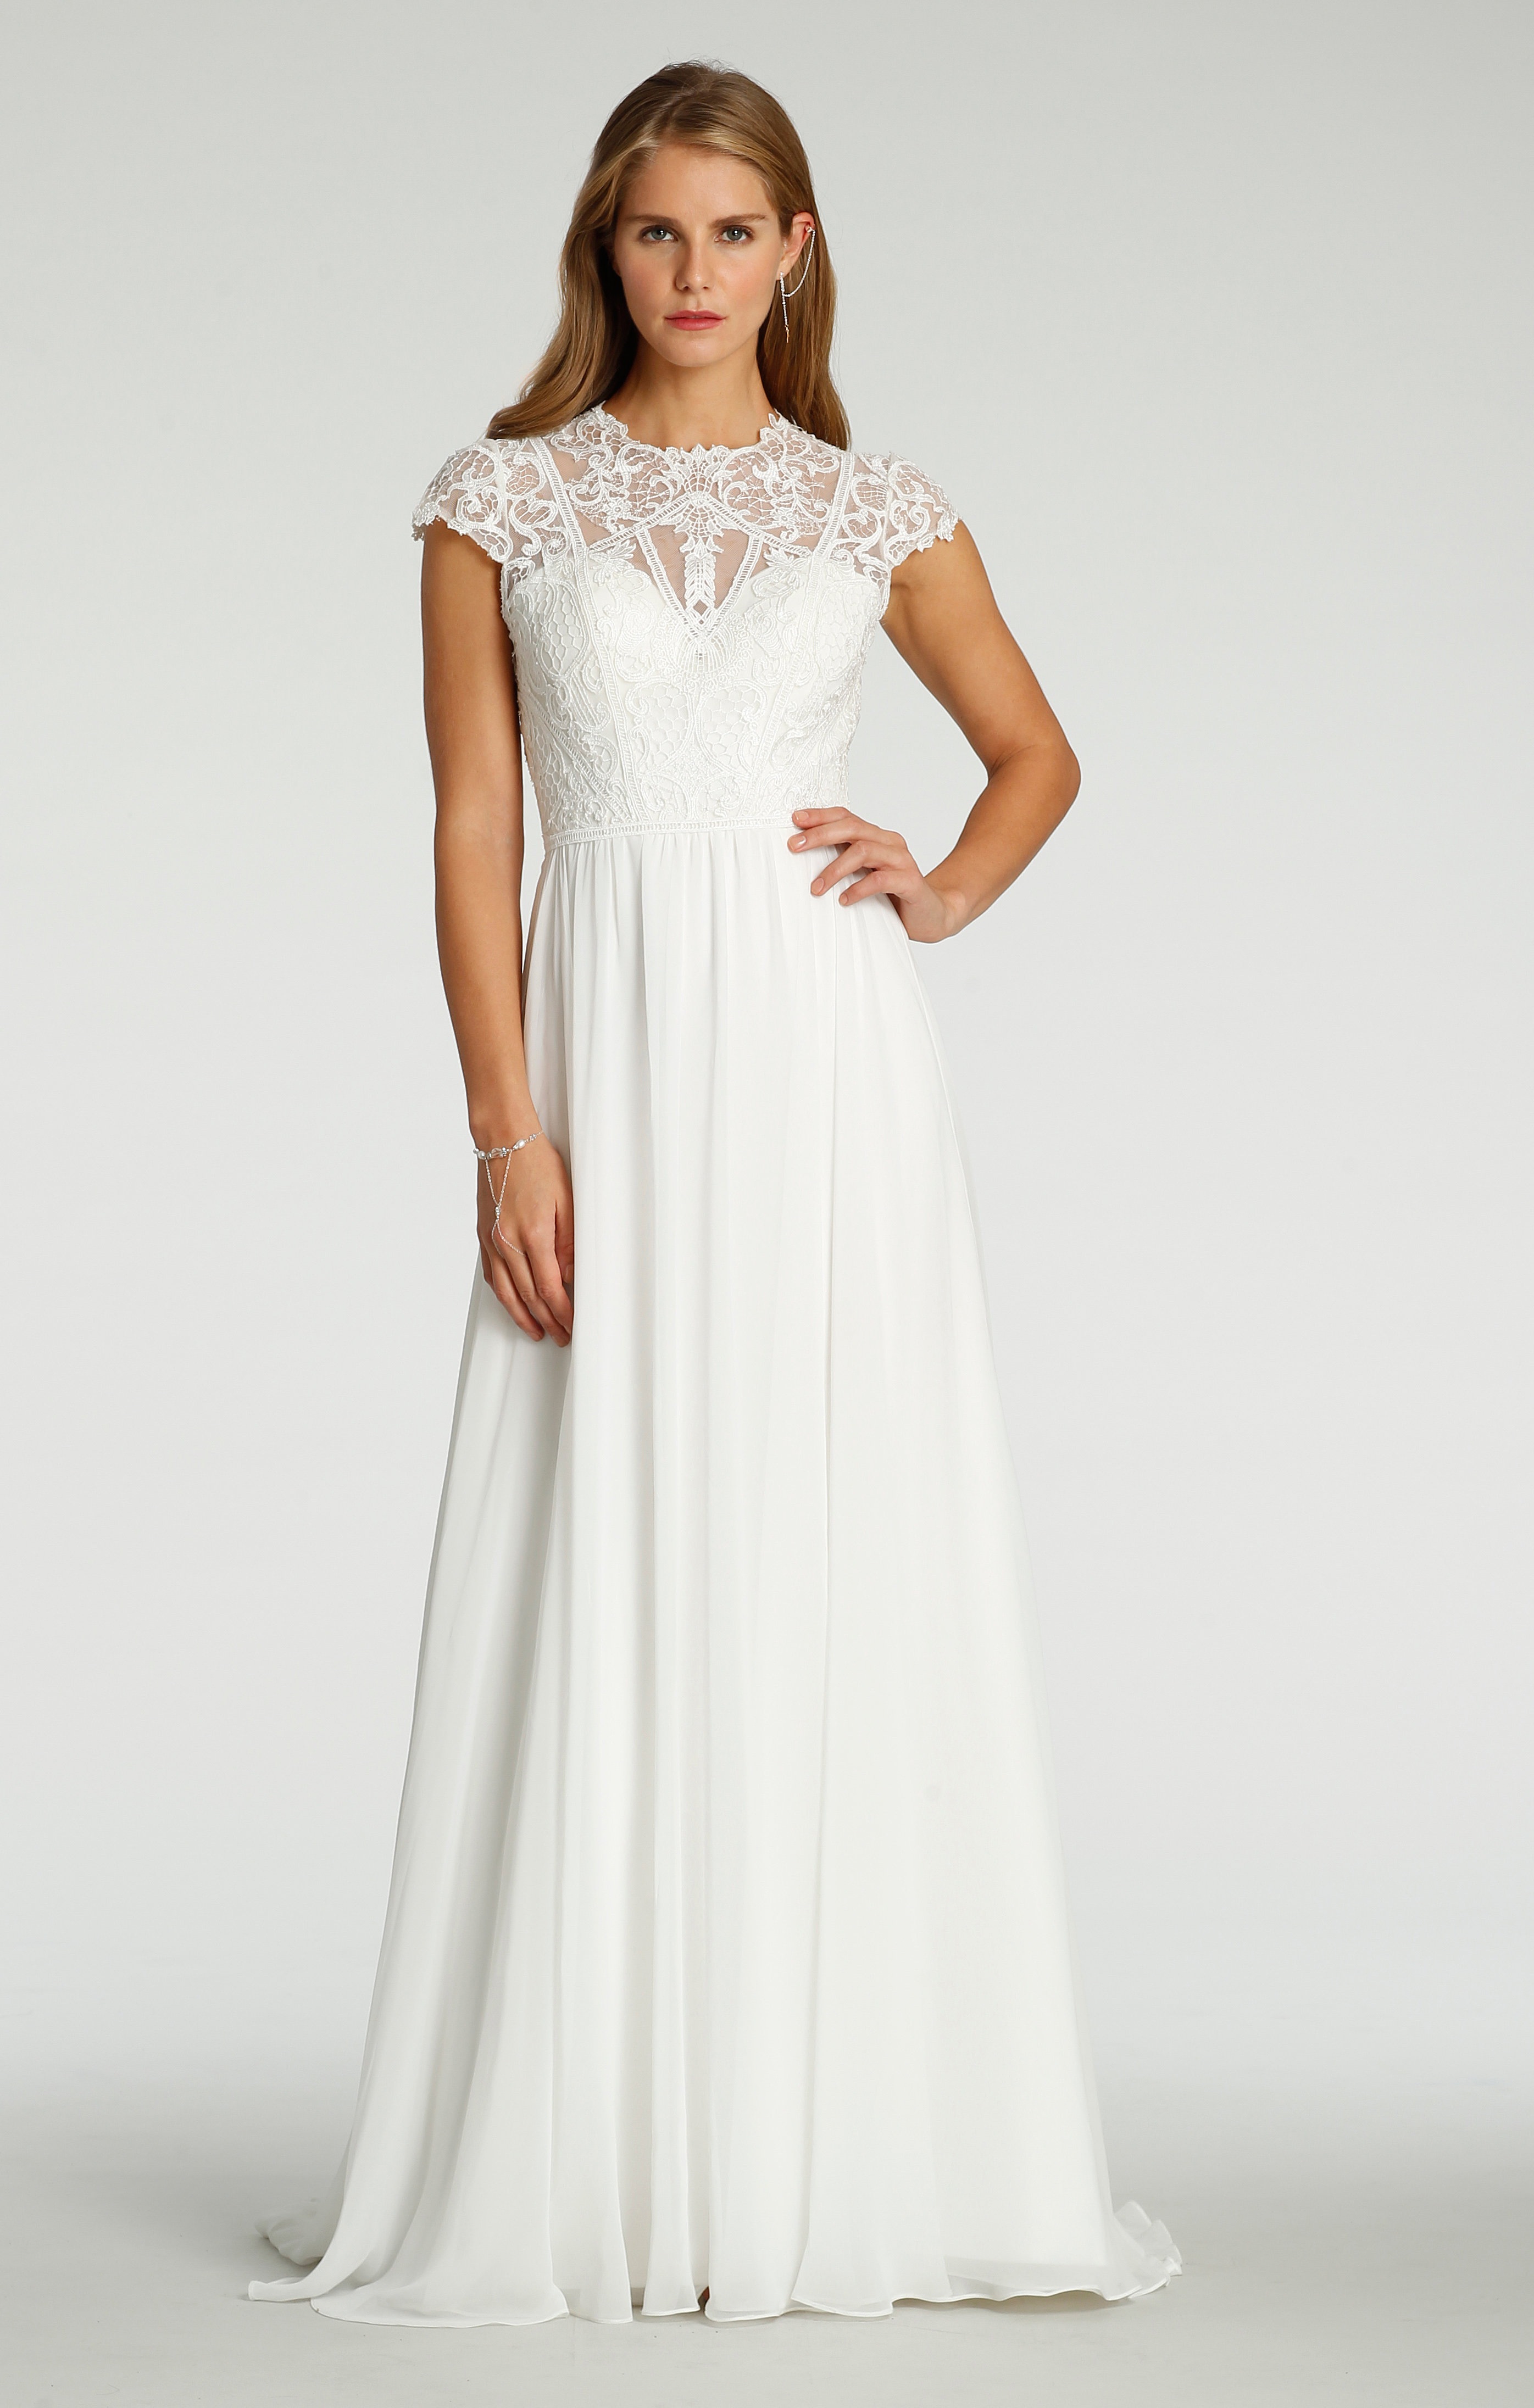 Boho Chic Ti Adora Wedding Dress Collection Spring 2017 : Bridal gowns and wedding dresses by jlm couture style